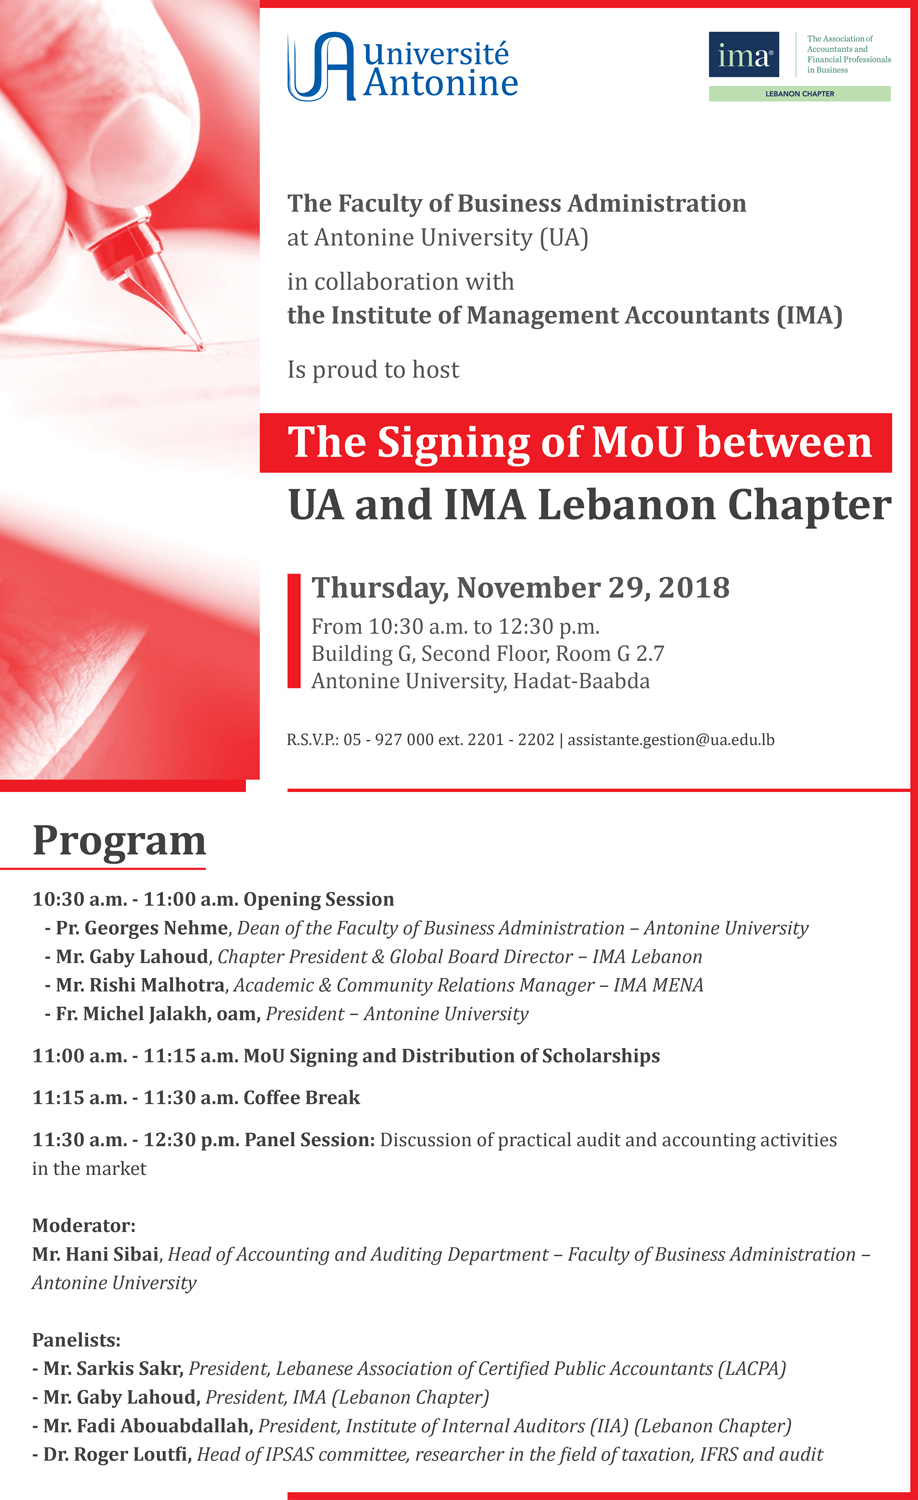 The Signing of MoU between UA and IMA Lebanon Chapter